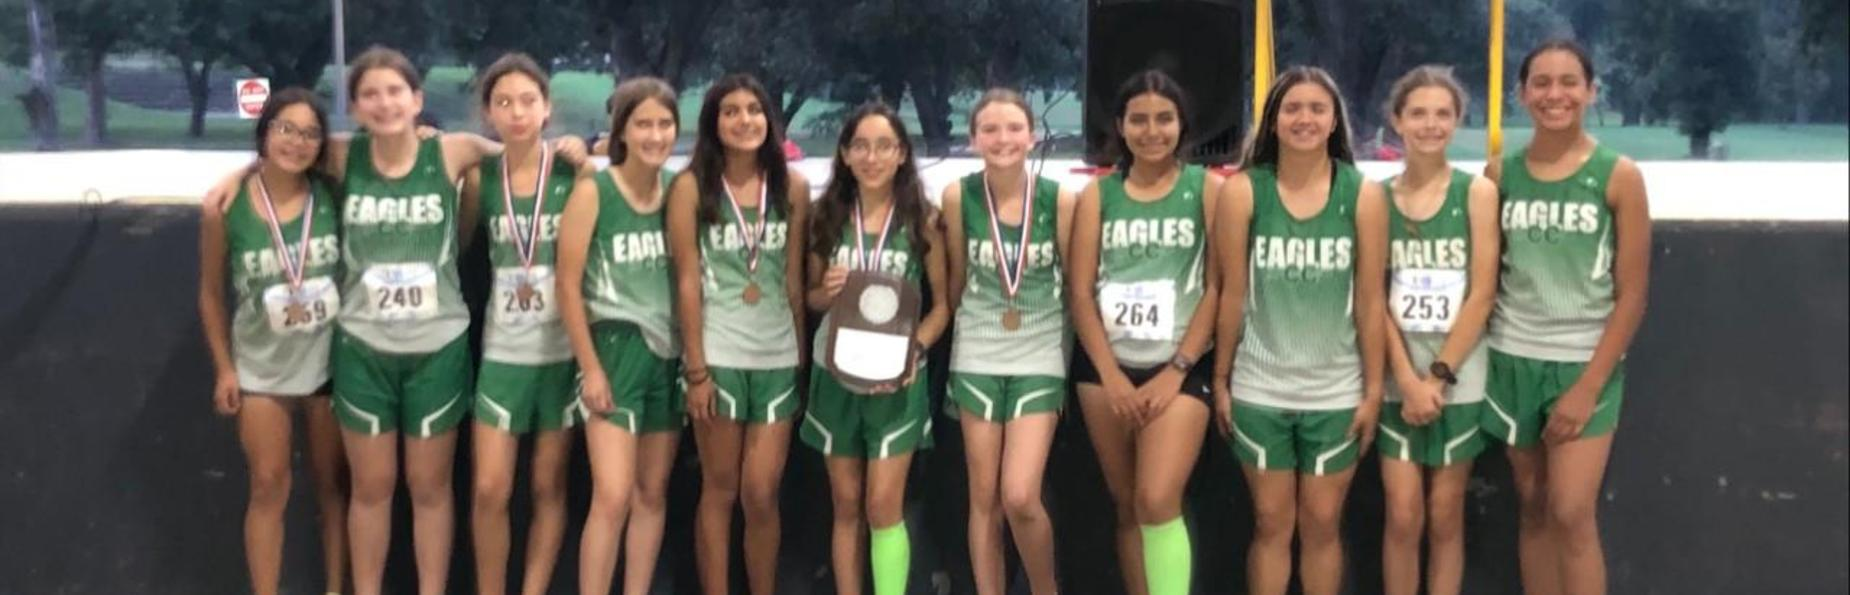 8th grade Girls' Cross Country District Champions